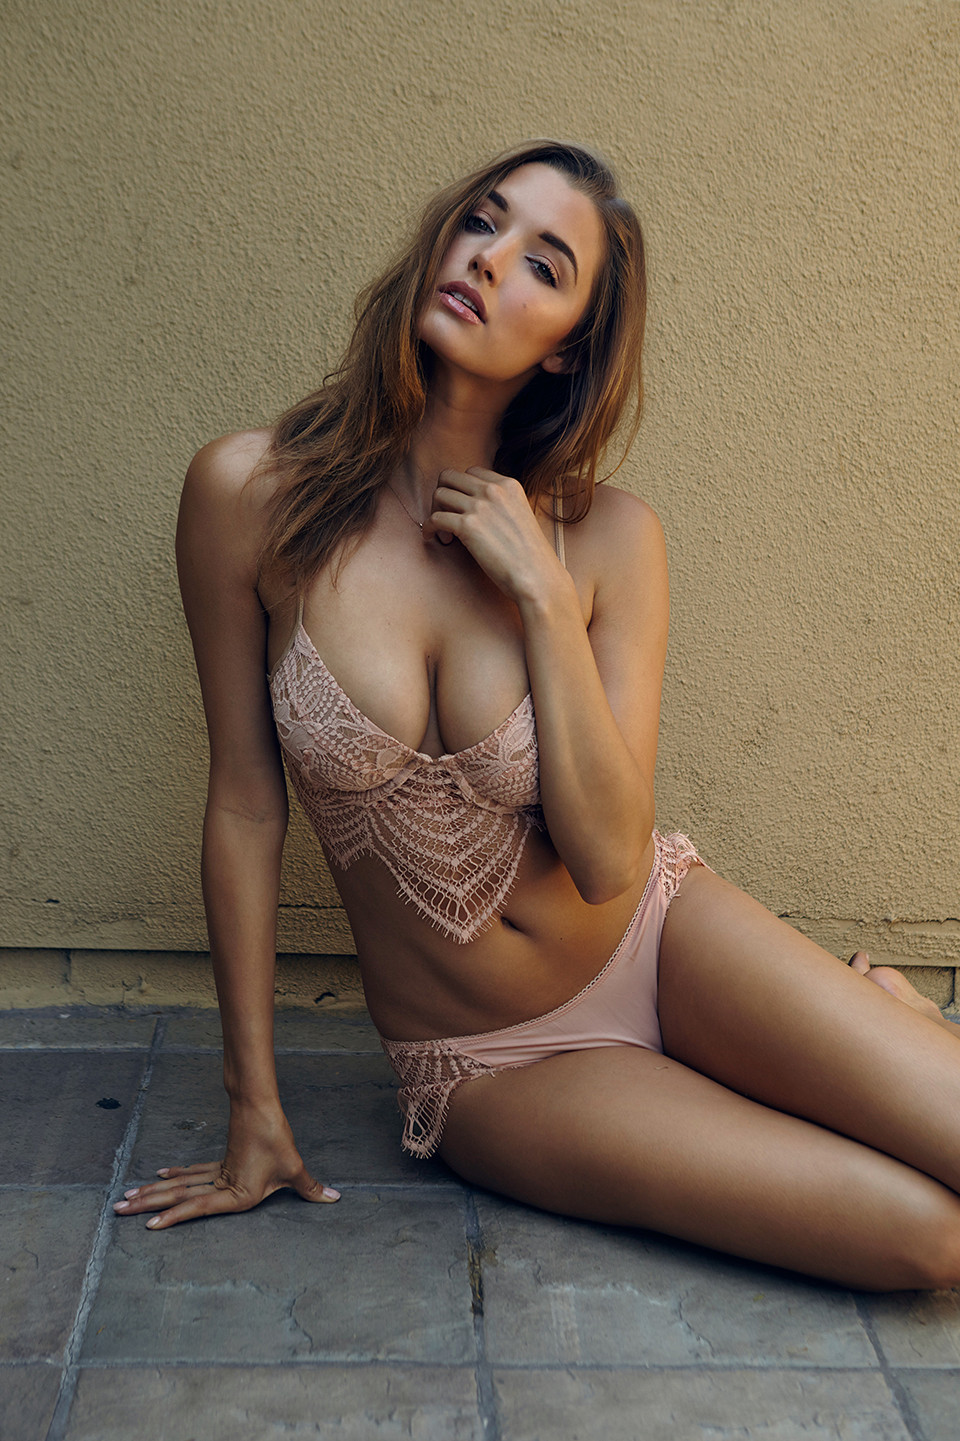 alyssa arce topless photos – #thefappening